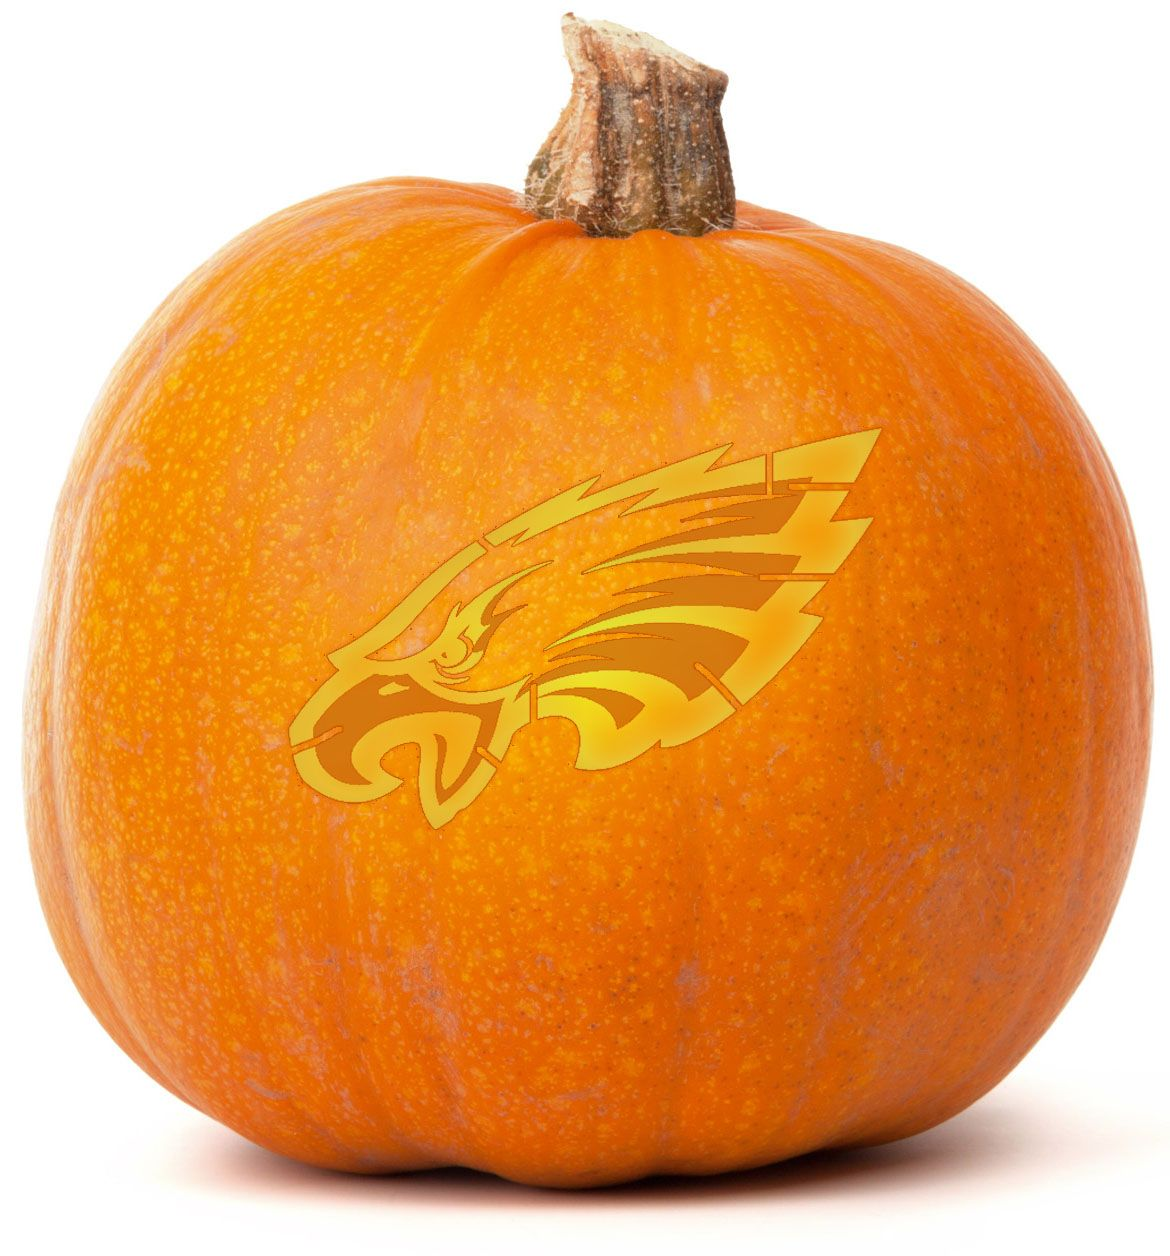 download our free philadelphia eagles pumpkin carving template